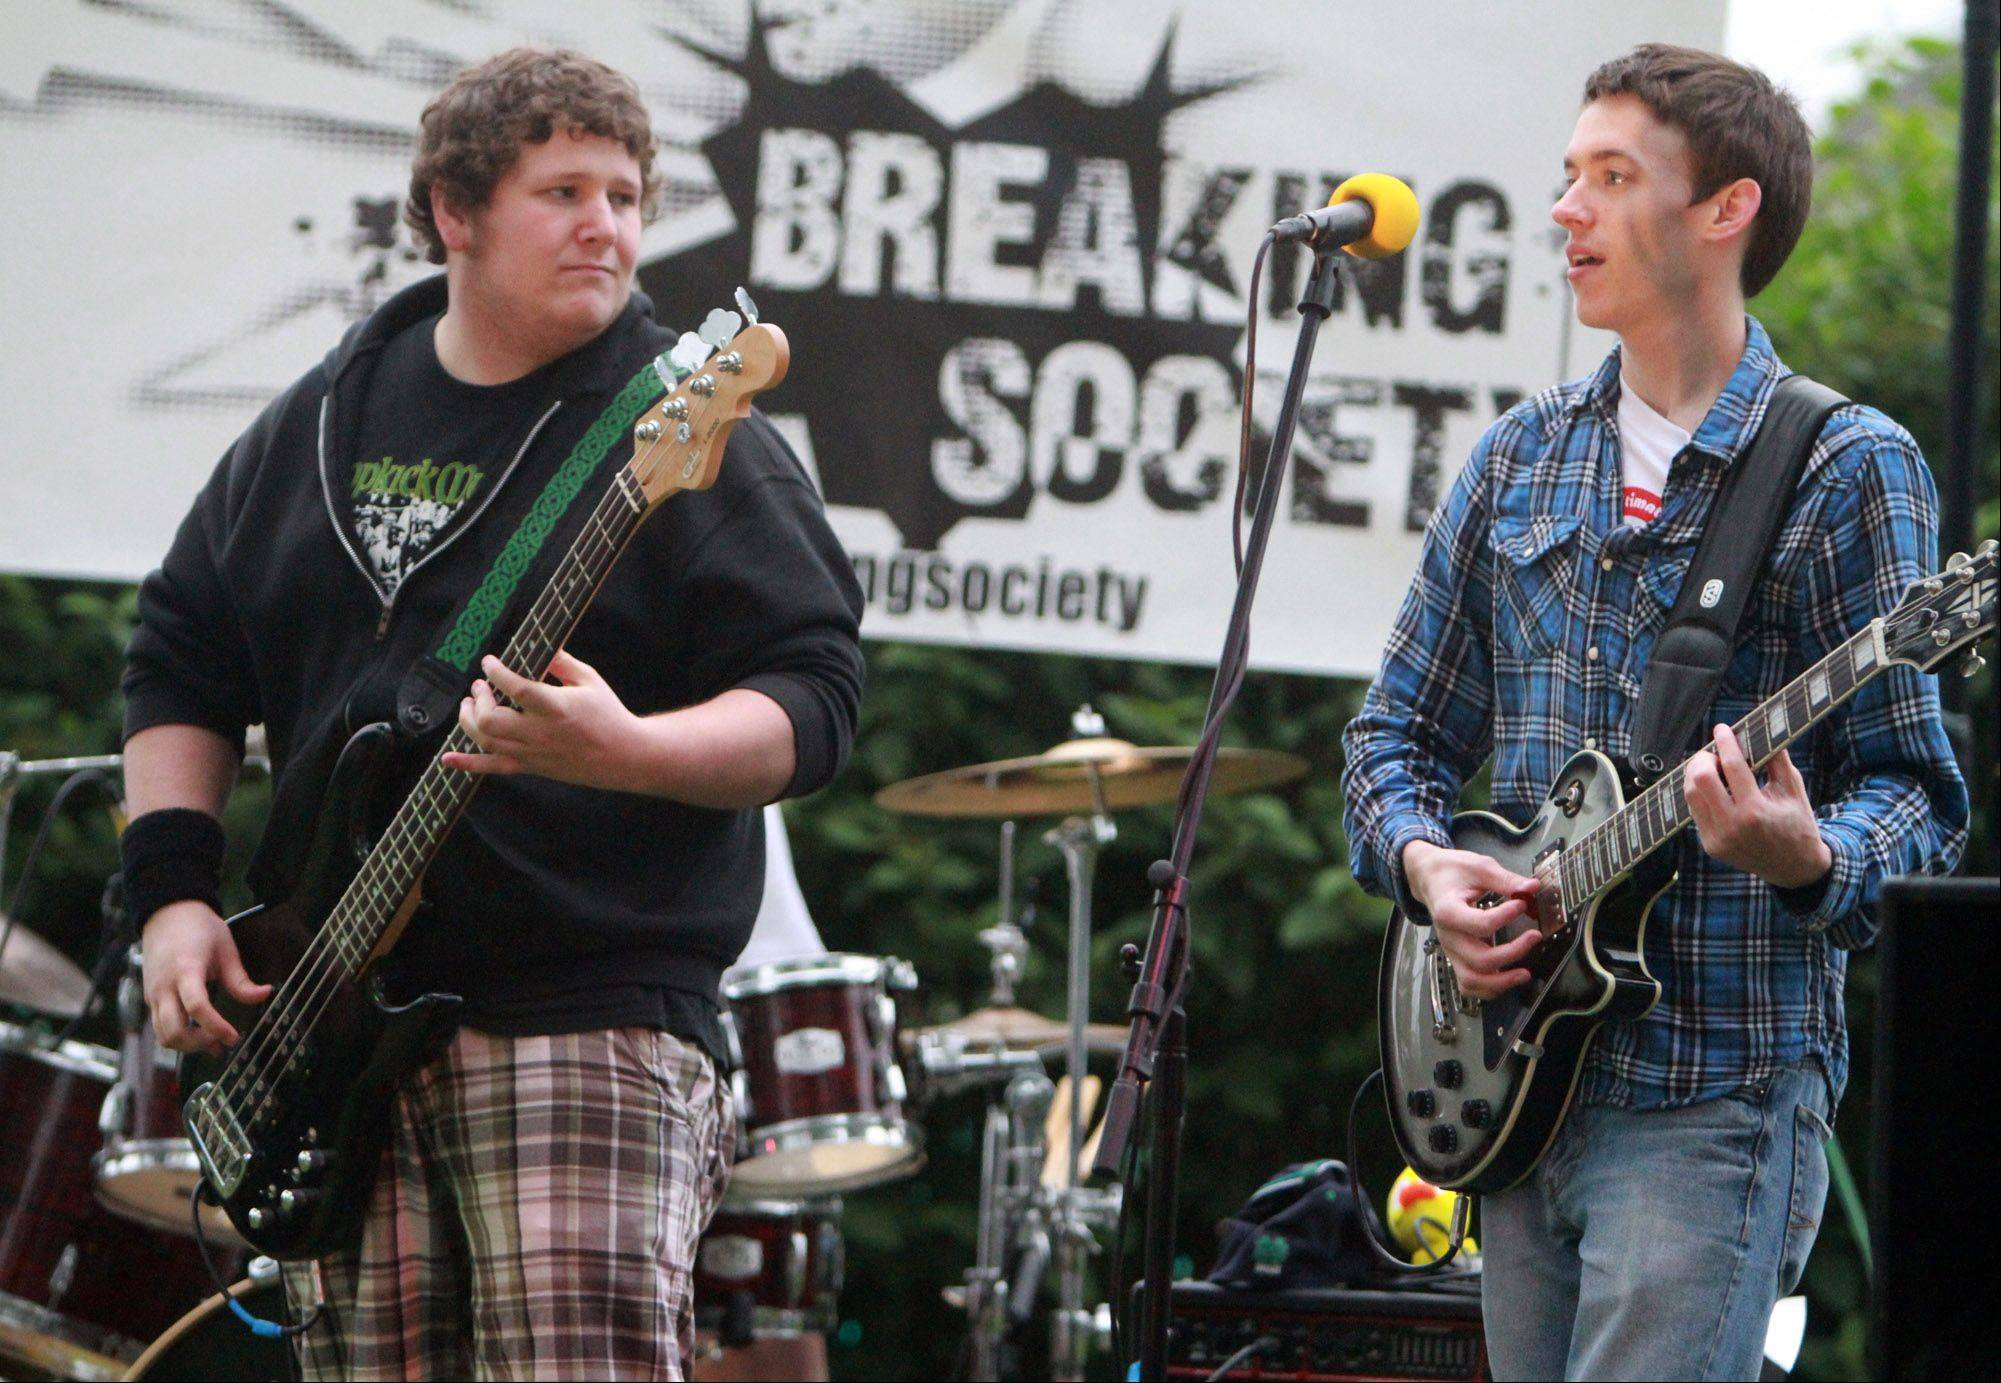 Patrick McCommons, left, and Rob Kerpan with the band Breaking Society perform at Teen Night during the Celebration of Summer in Lake Villa.